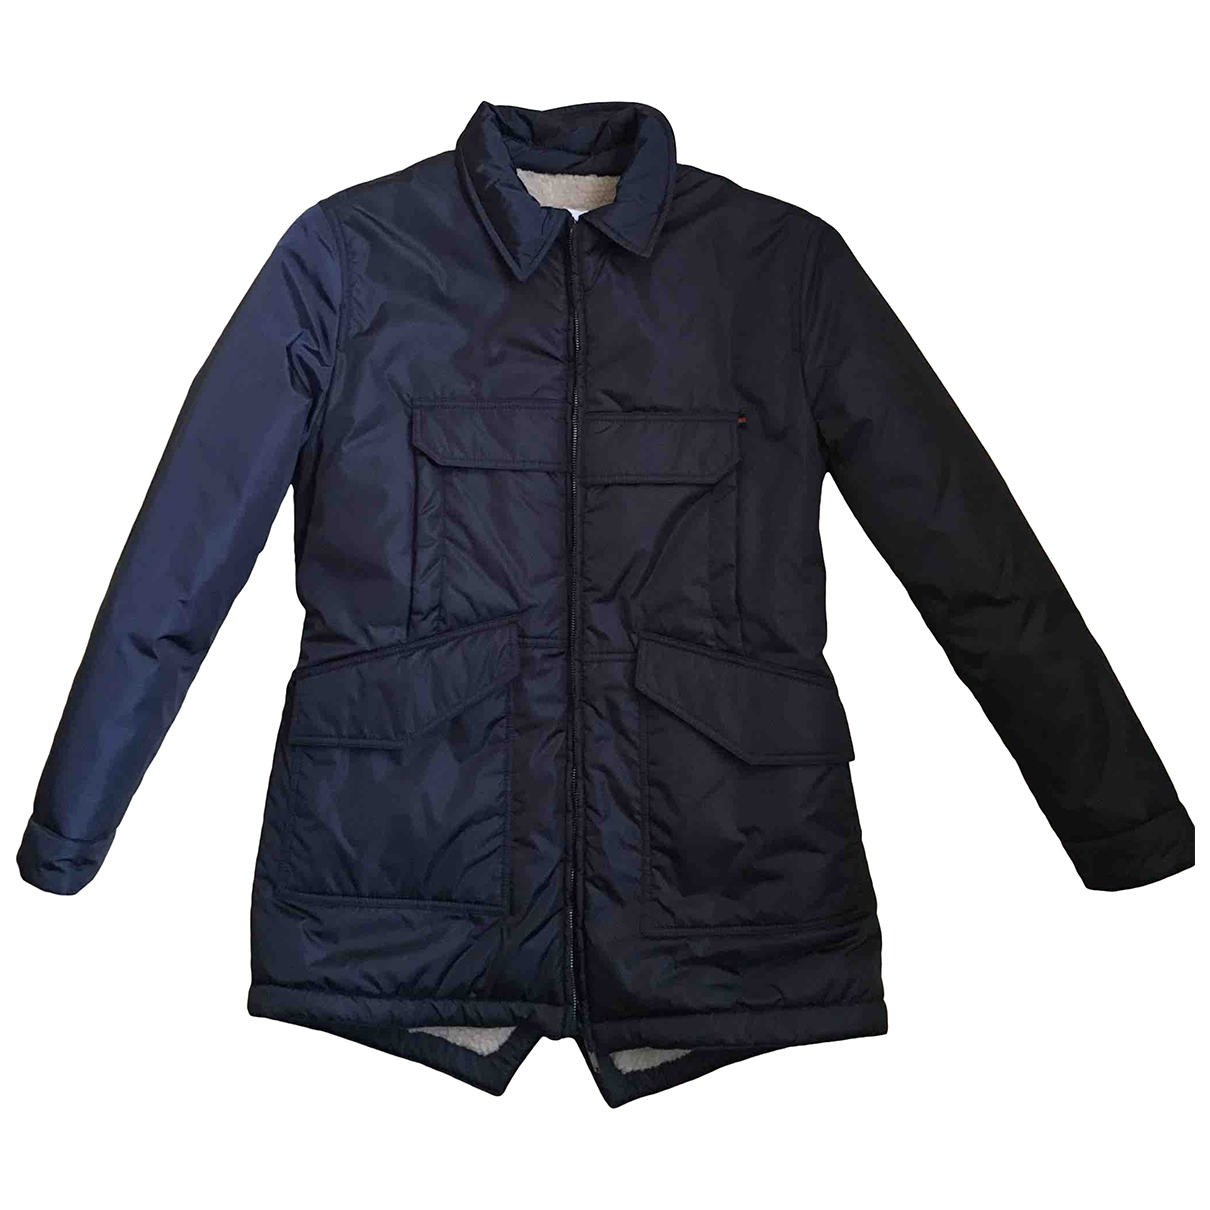 Gucci \N Blue jacket & coat for Kids 10 years - until 56 inches UK